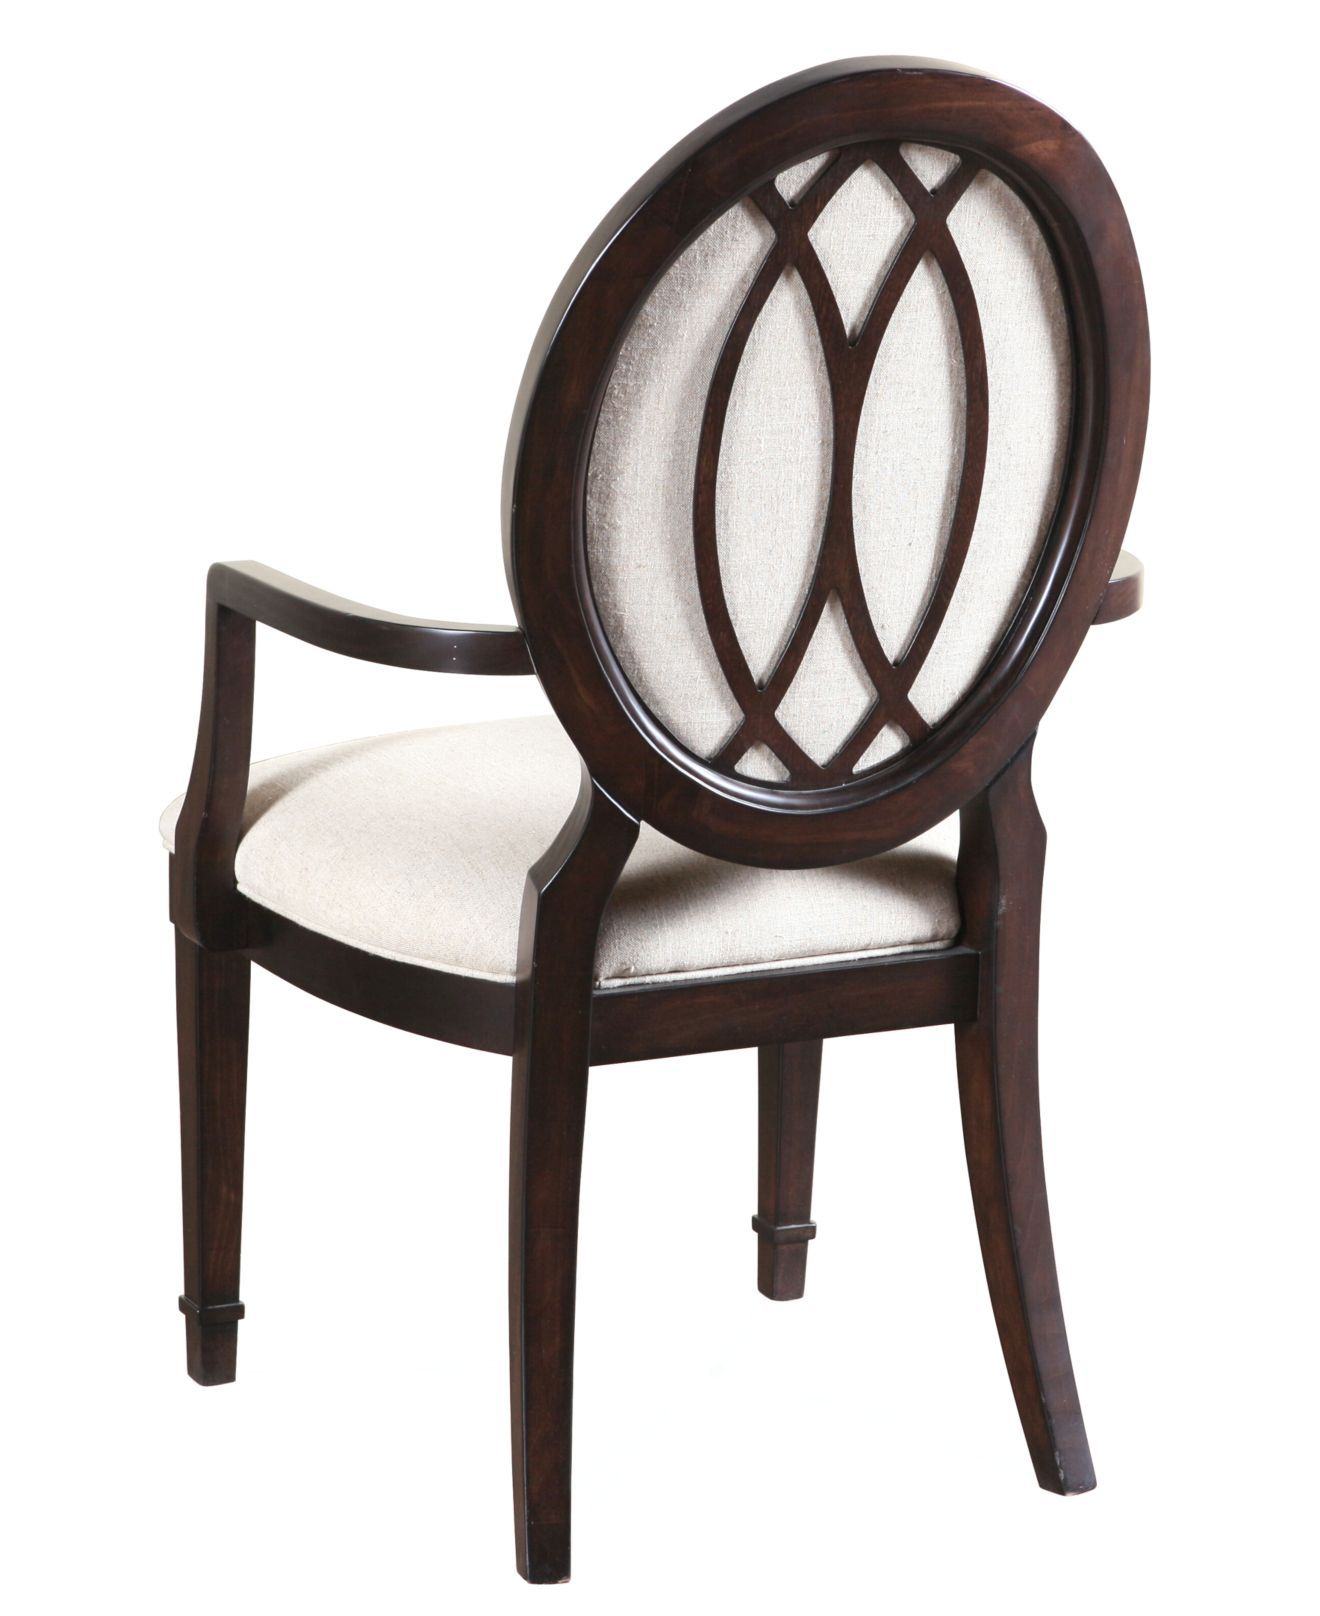 American style Solid Wood House Chair Retro Old European ...